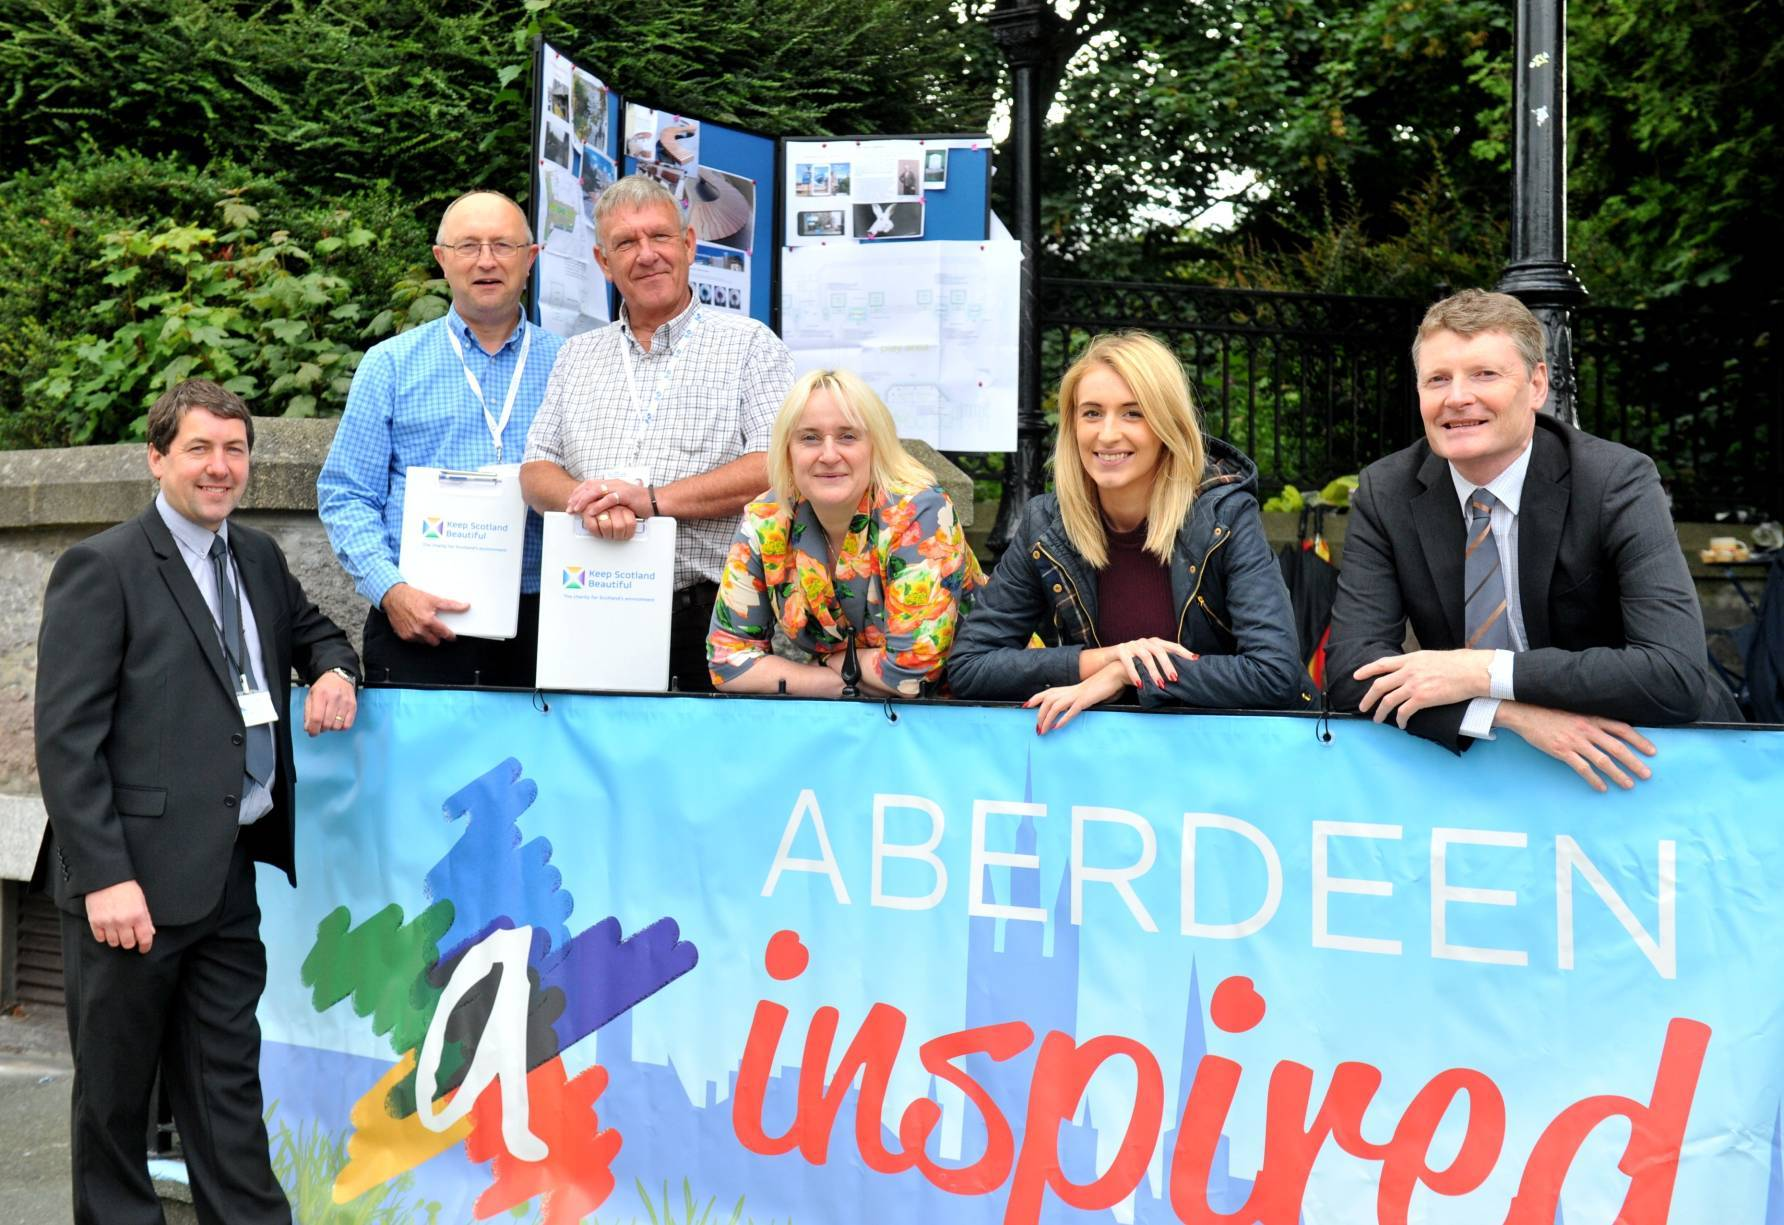 Business organisation Aberdeen Inspired has carried out a civic pride campaign throughout Aberdeen city centre.